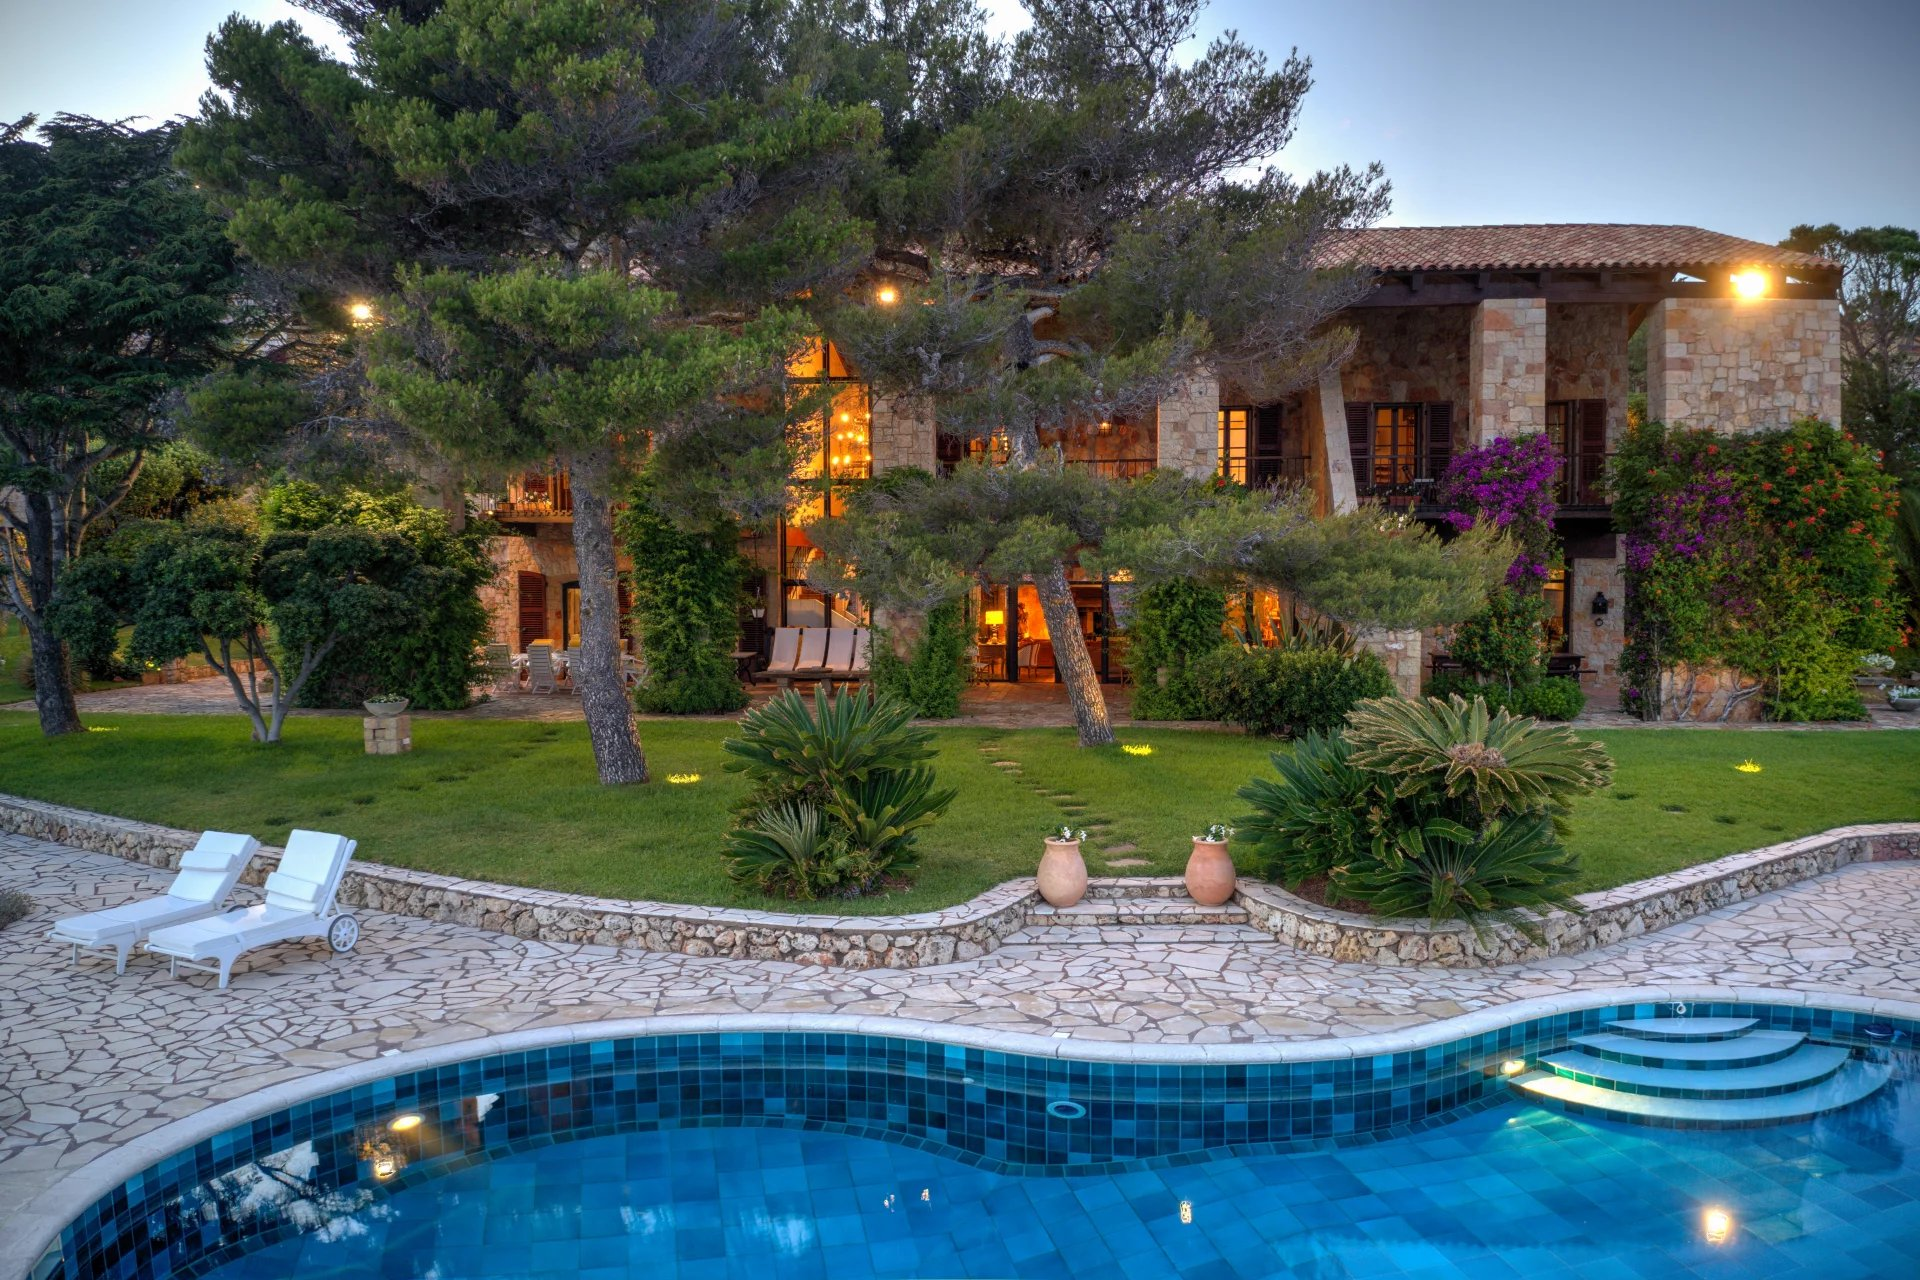 A Rare Waterfront Villa With Exclusive Access To The Mediteranean